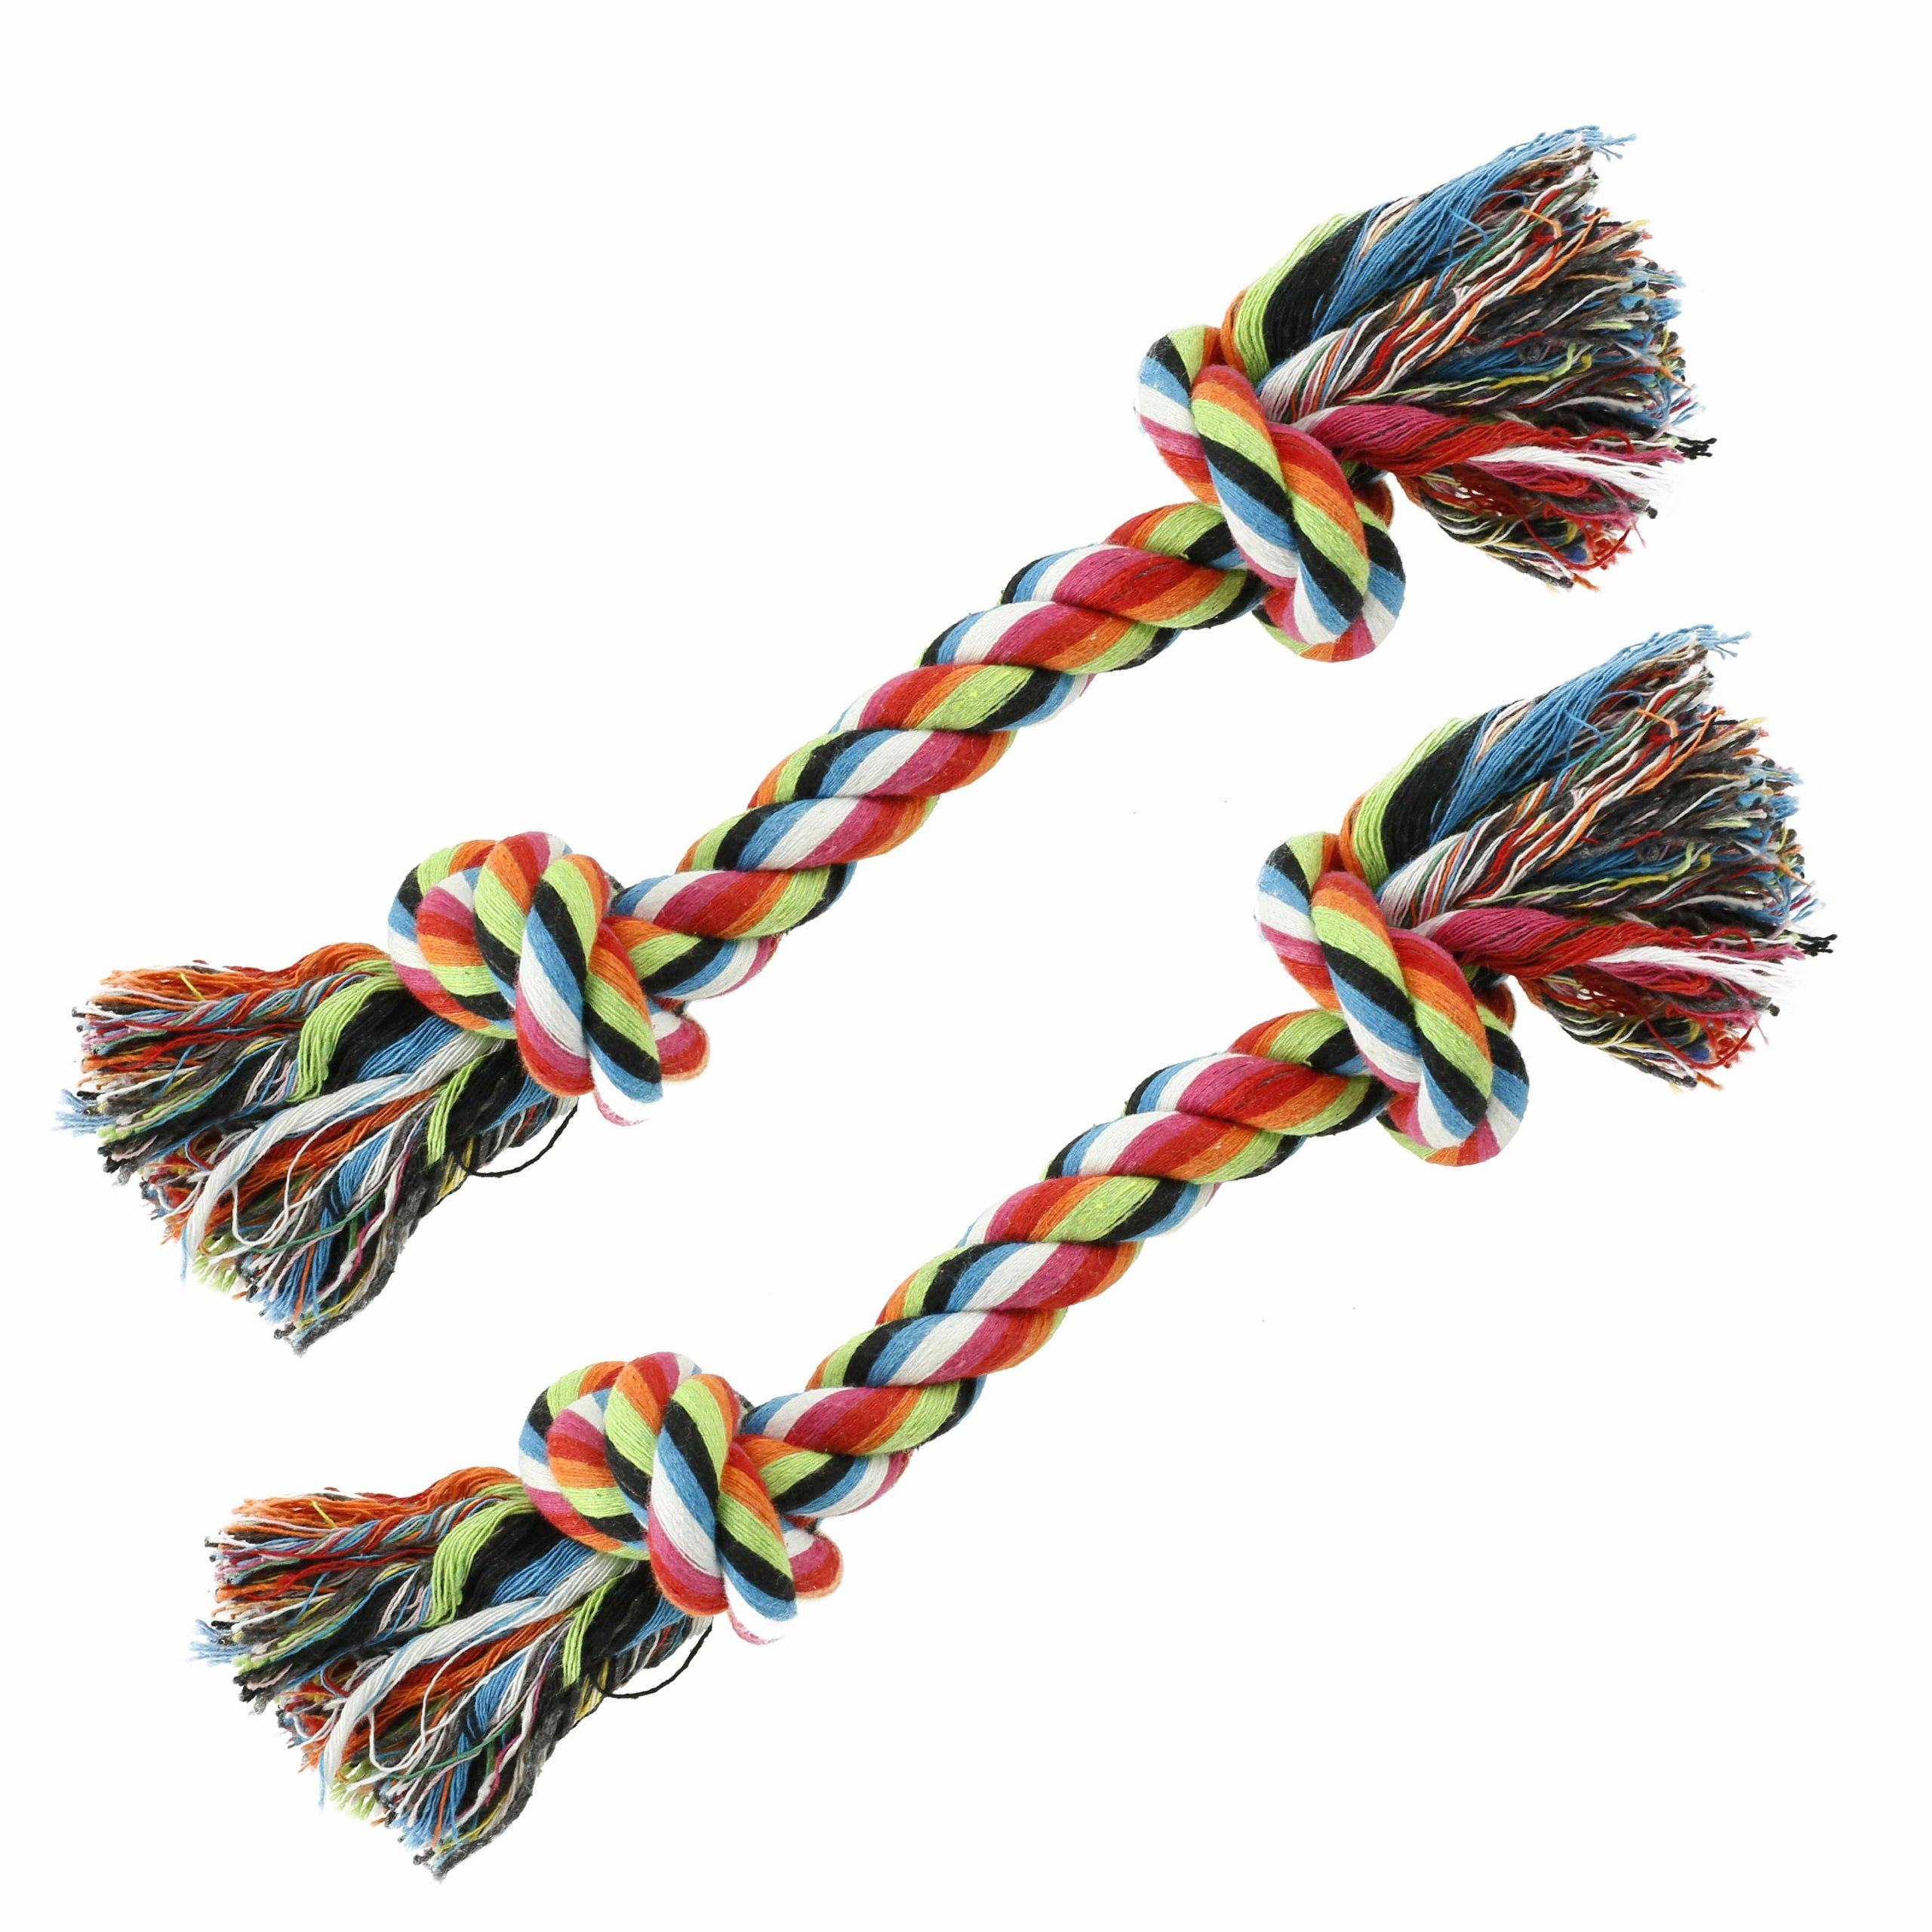 Set of 2 Cotton Dog Rope Toys - Great for Tug-o-war or Fetch! by DogToys Brand